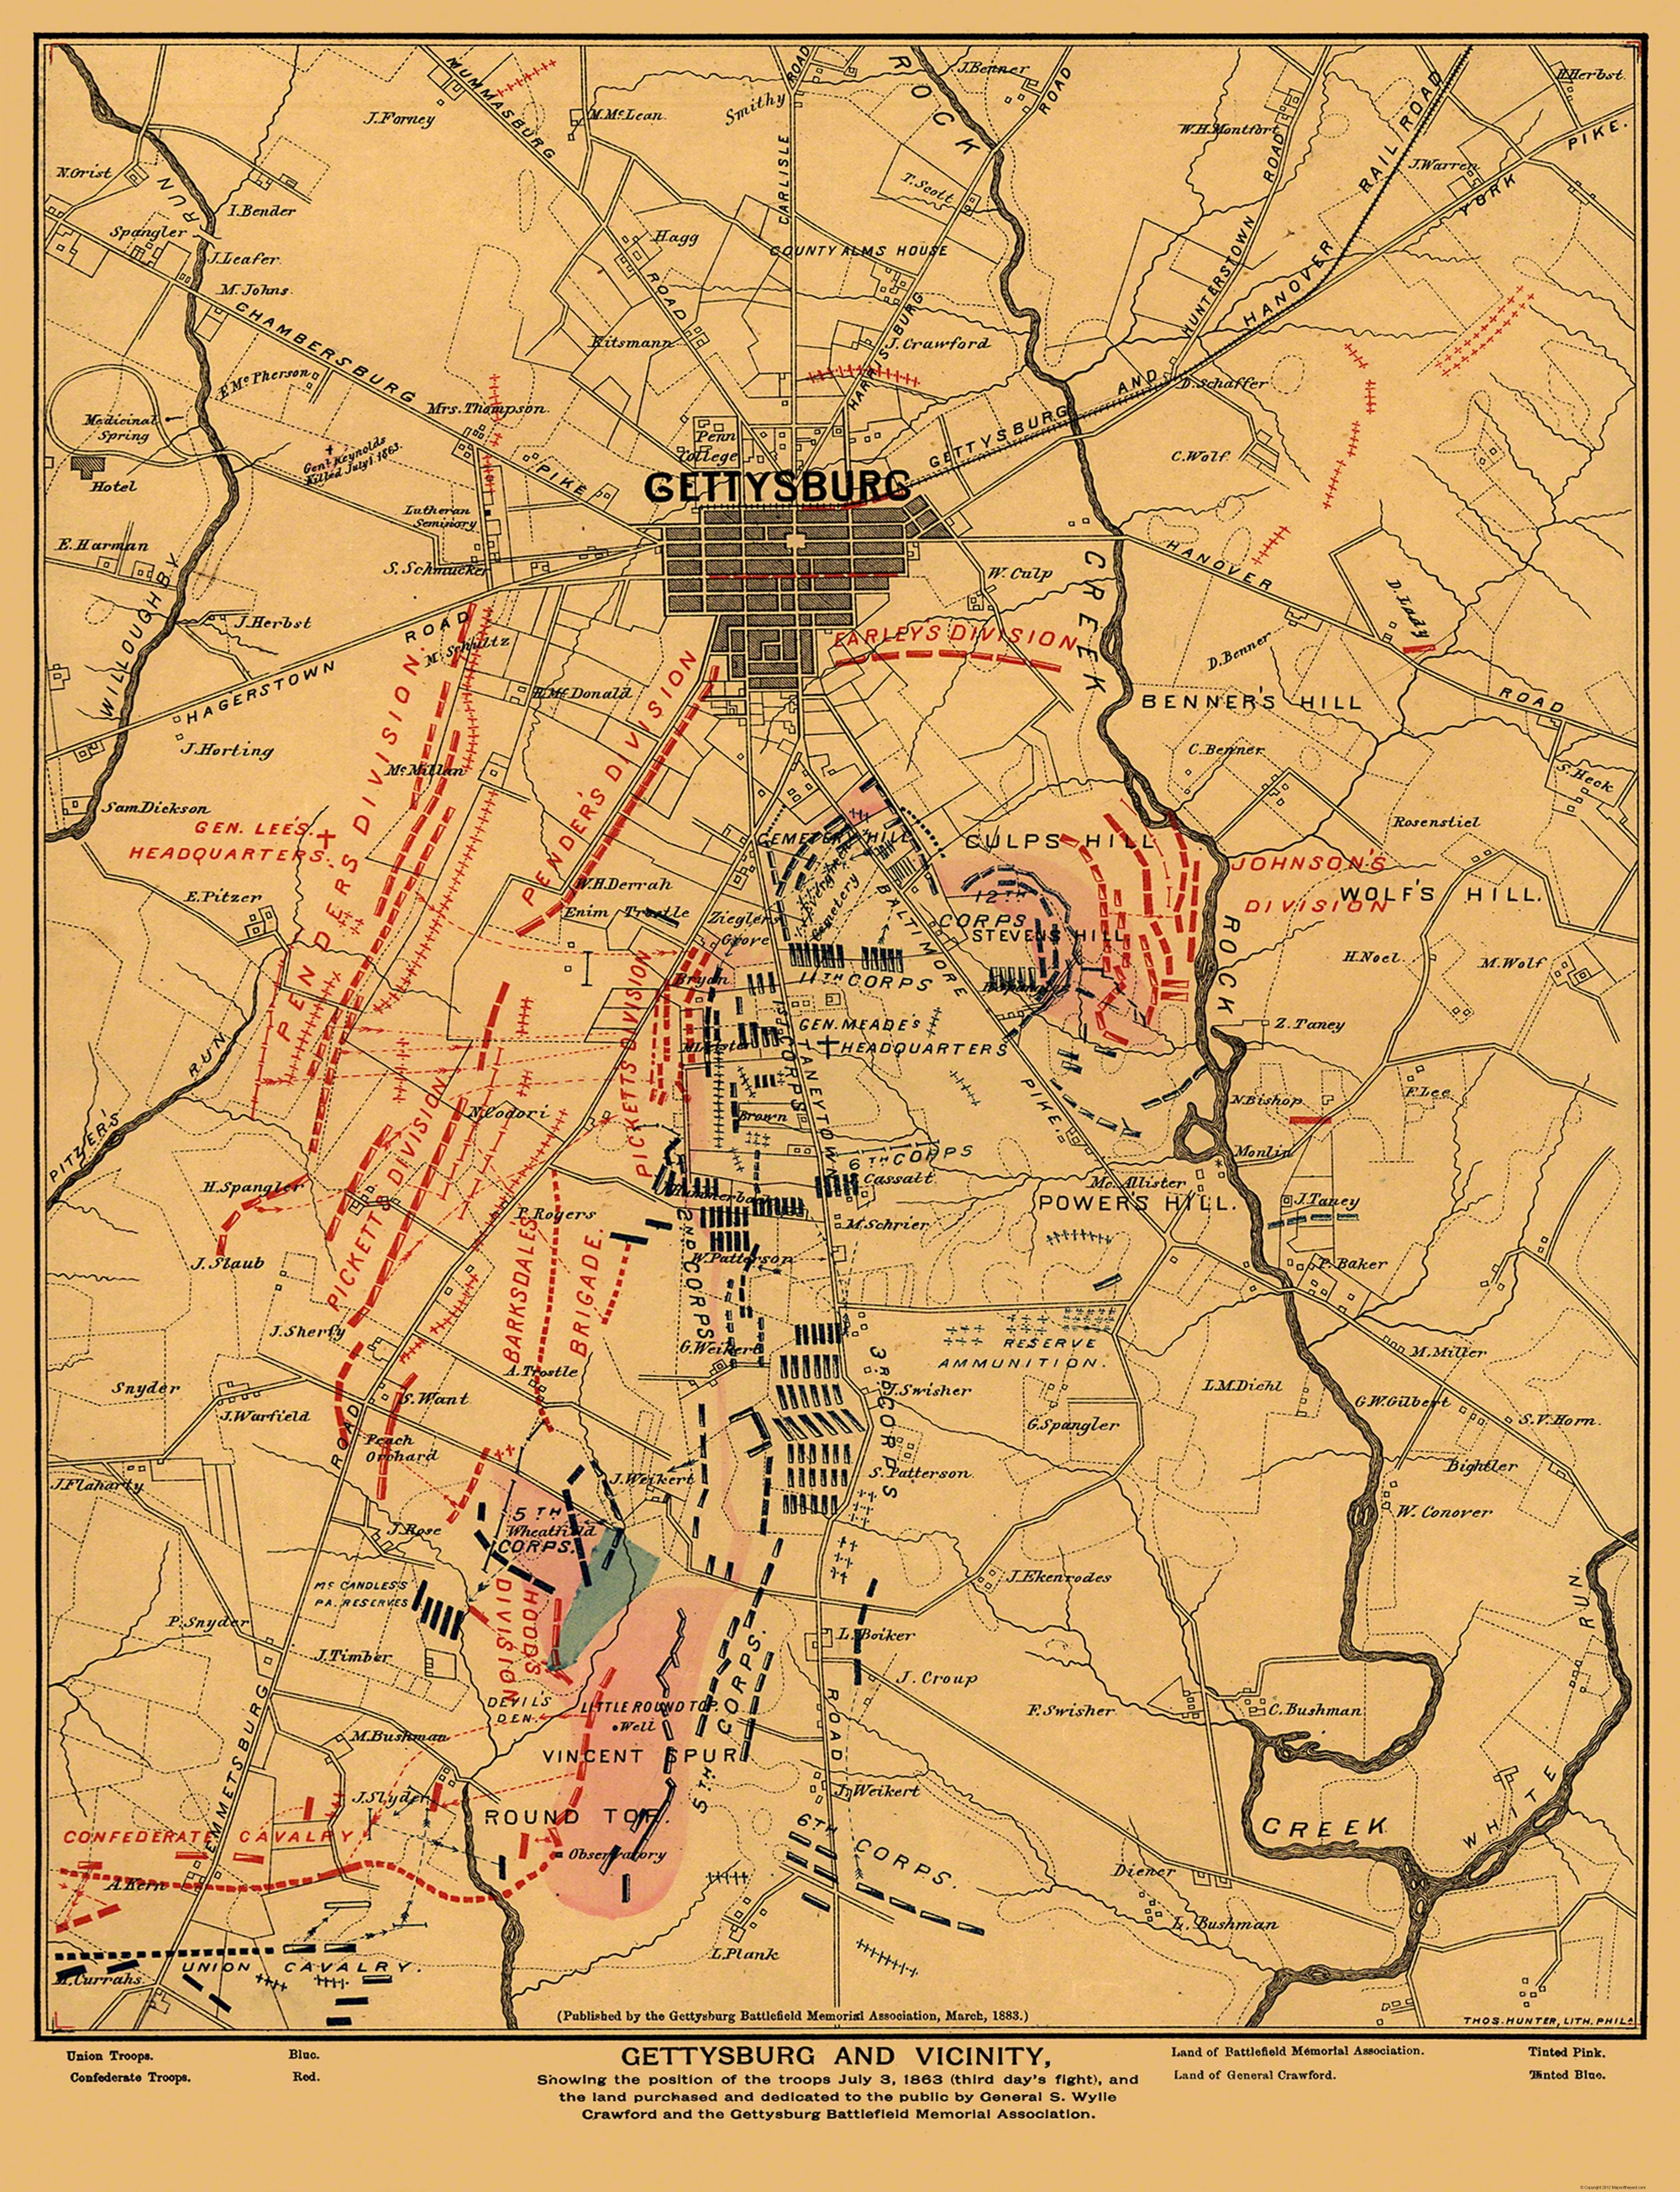 Civil War Map - Gettysburg & Vicinity PA 1863 on franklin county, pennsylvania town names on map, dauphin county, berks county pa map, jefferson county, perry county pa map, somerset county, adams county ia map, beaver county pa map, adams county wis map, adams county colorado zip code map, montgomery county, chester county pa map, mclean county pa map, cambria county pa map, delaware county, adams county township map, new jersey and pennsylvania county map, lancaster county, allegheny county pa map, york county, knox county pa map, adams county road map, chester county, adams 12 boundary map, cumberland county pa map, berks county, adams county ms map, bedford county, cumberland county, bucks county, franklin county pa map, allegheny county, fulton county, coal county pa map, fayette county,